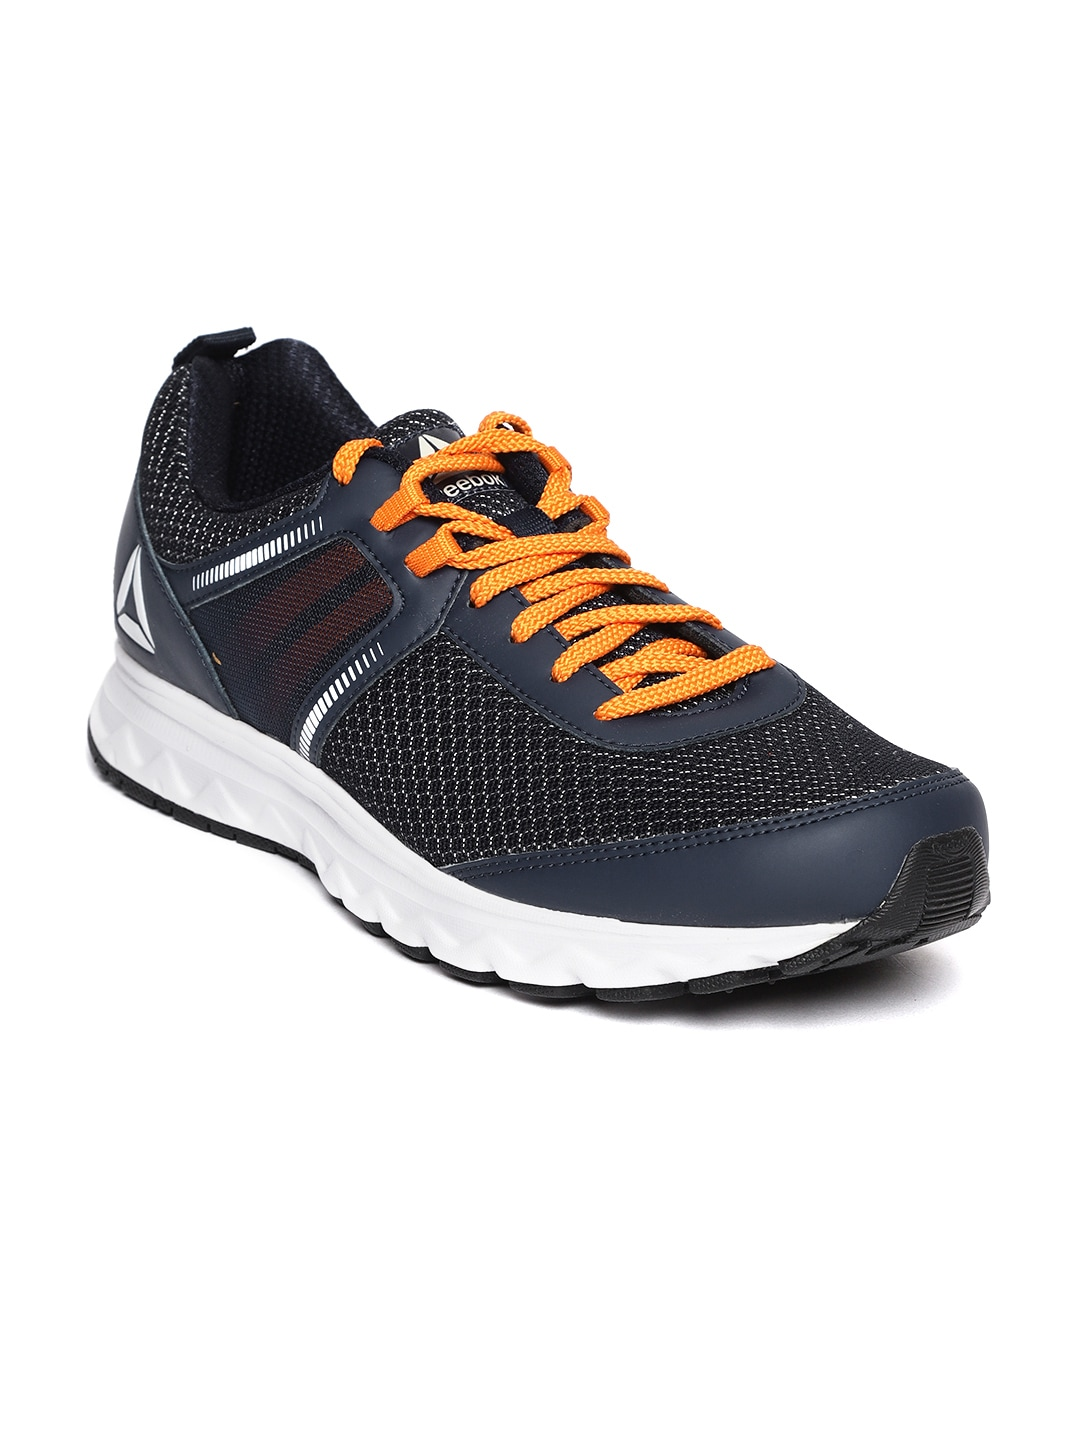 new product ebcdf ac32c Men Fashion Store - Buy Men Clothing, Footwear   Accessories Online   Myntra